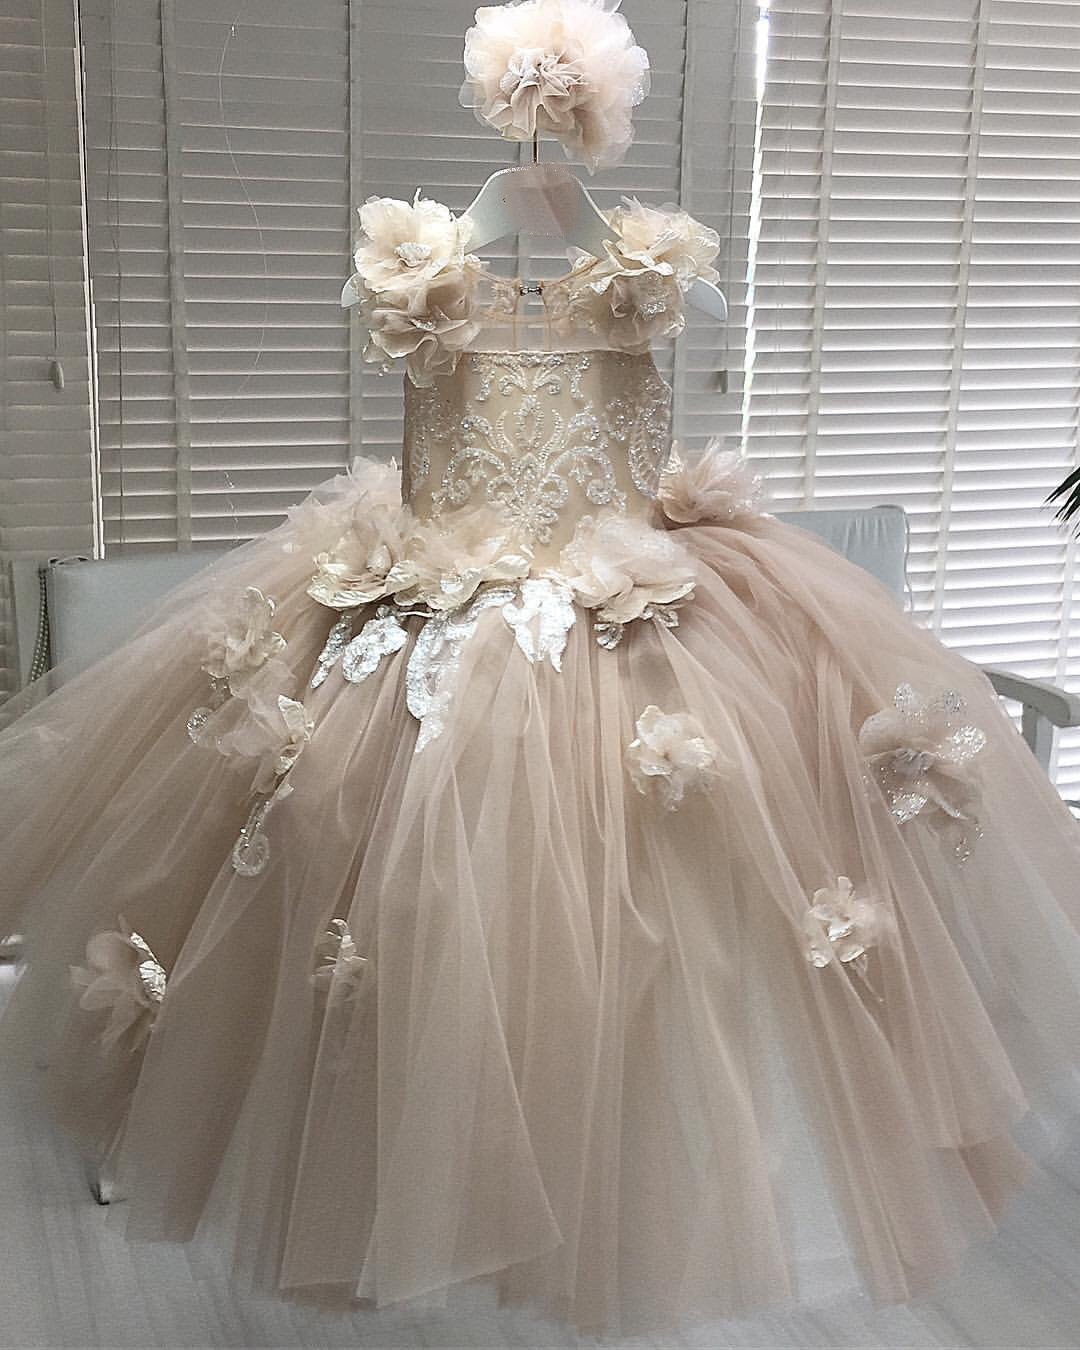 Kids Couture - Kids Couture UAE